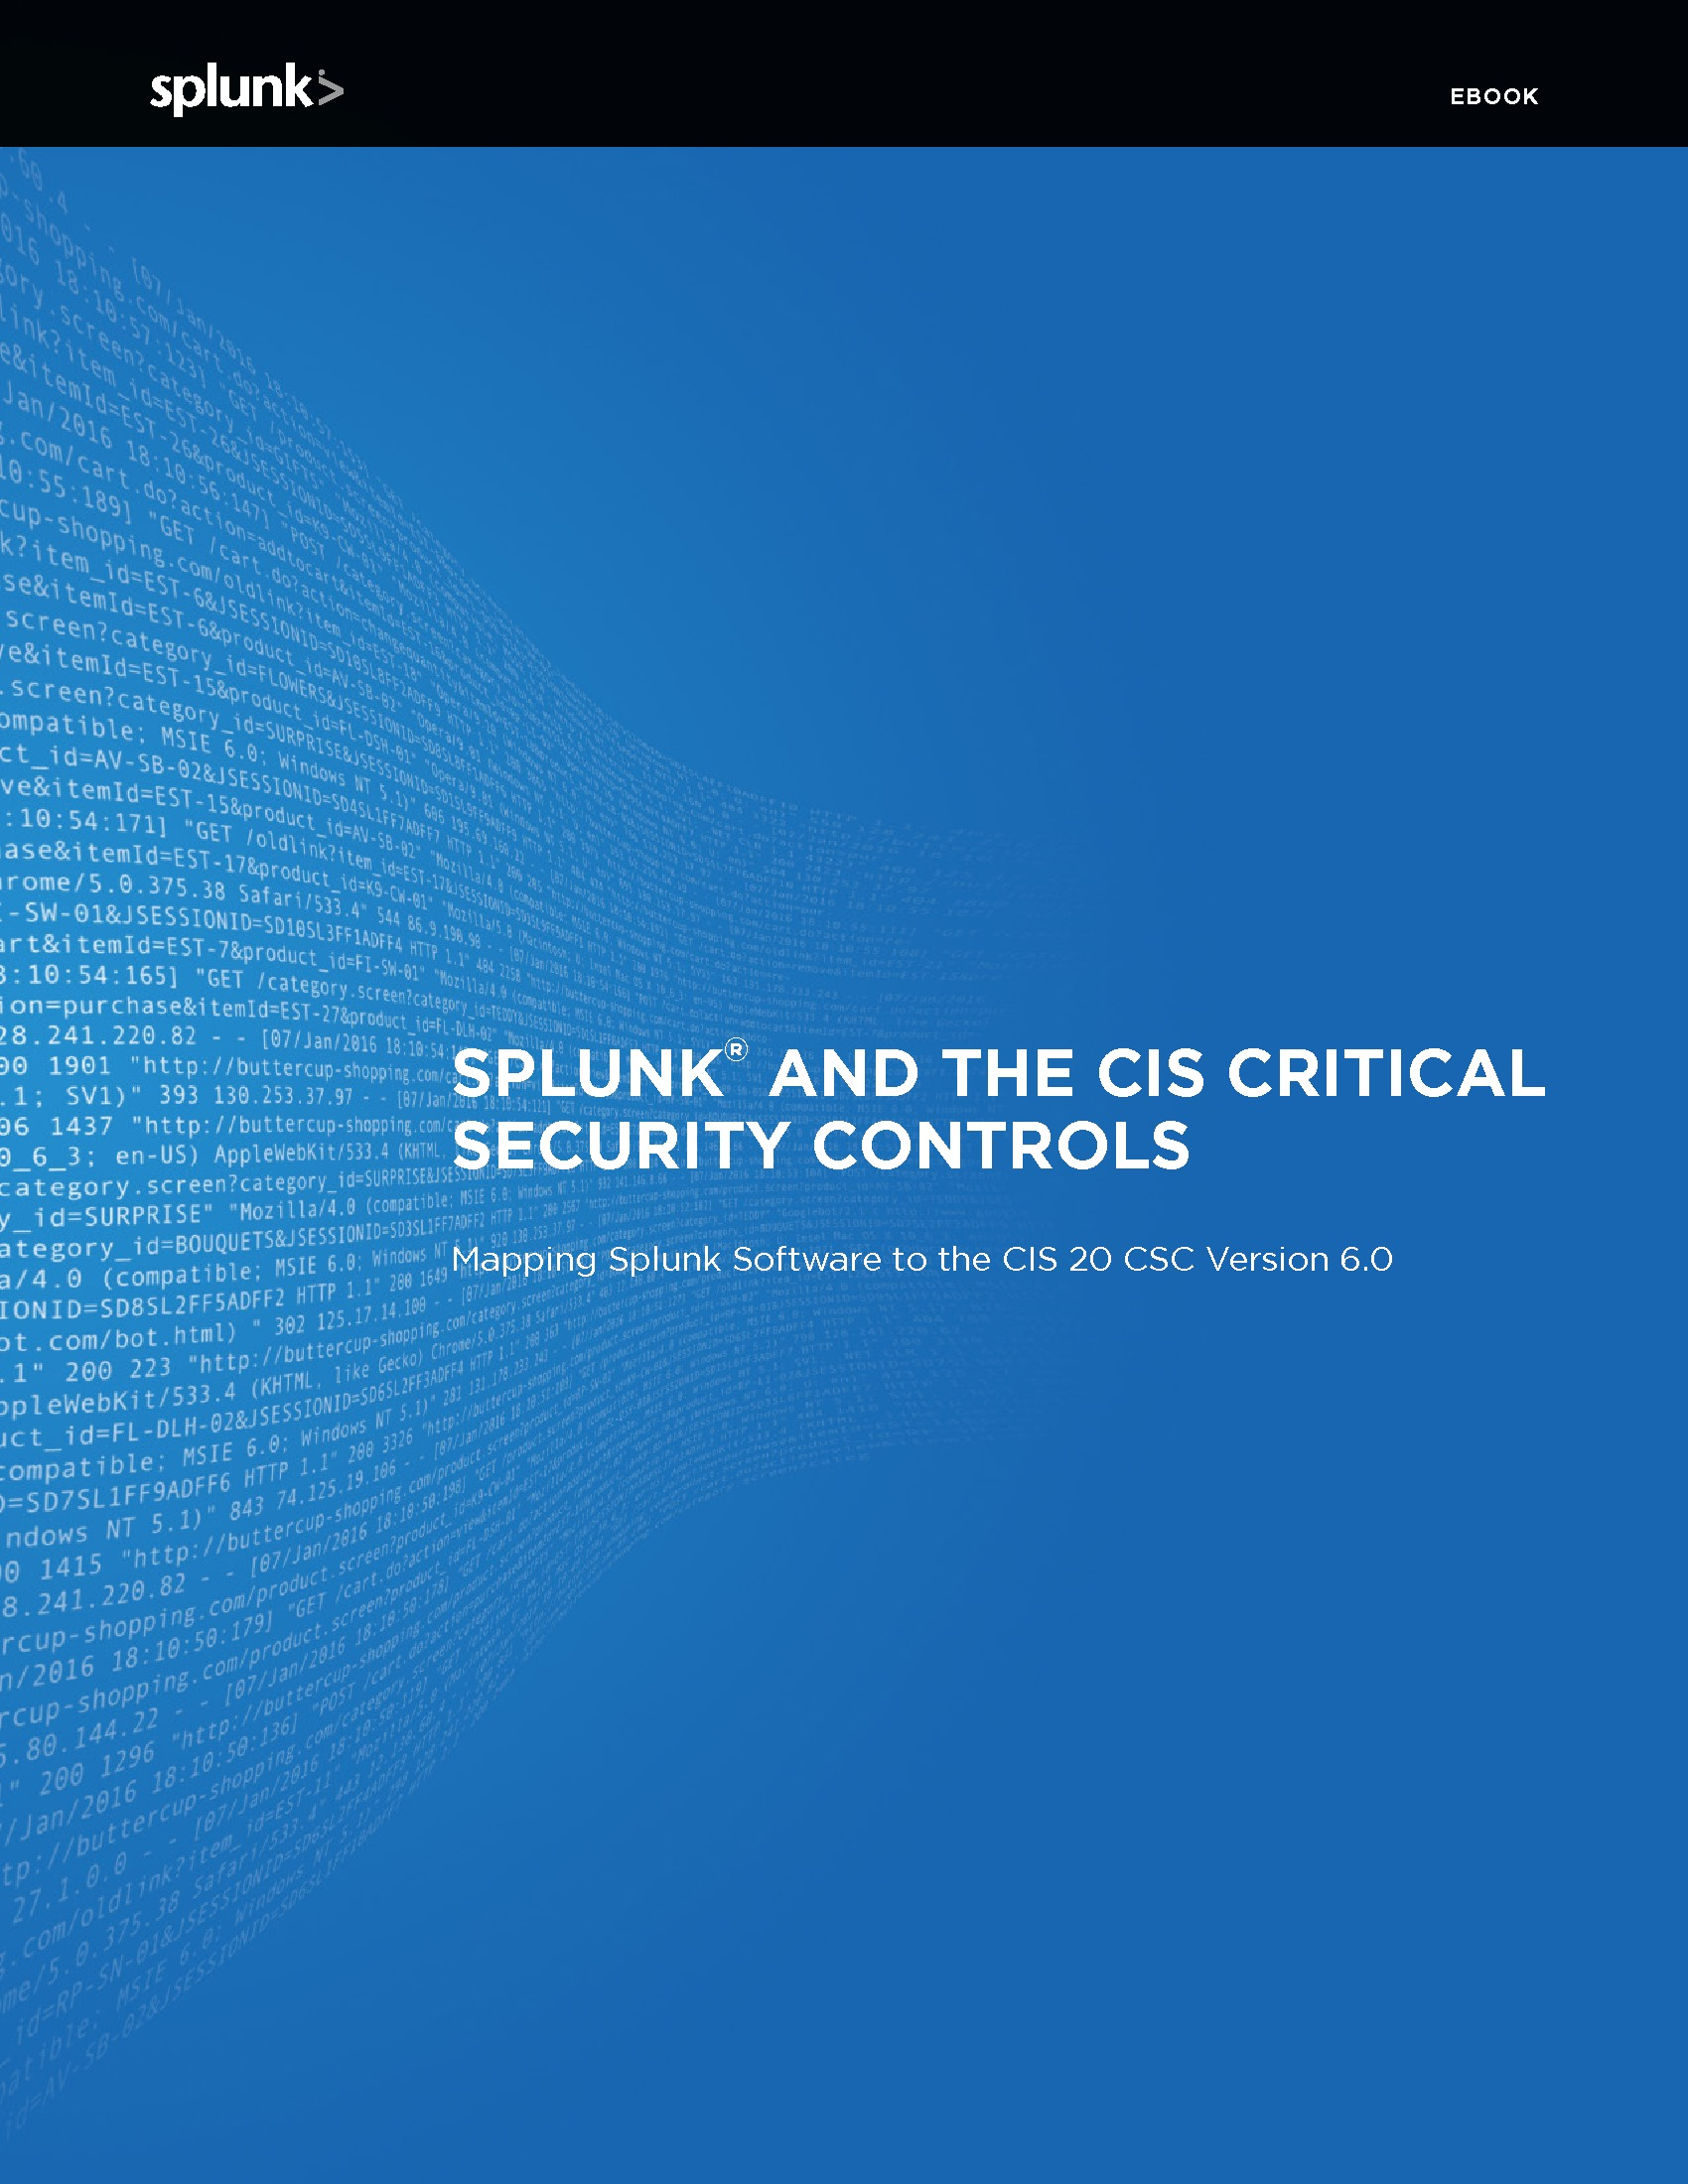 GT - Splunk - Supplied - 190913 - Splunk and the CIS